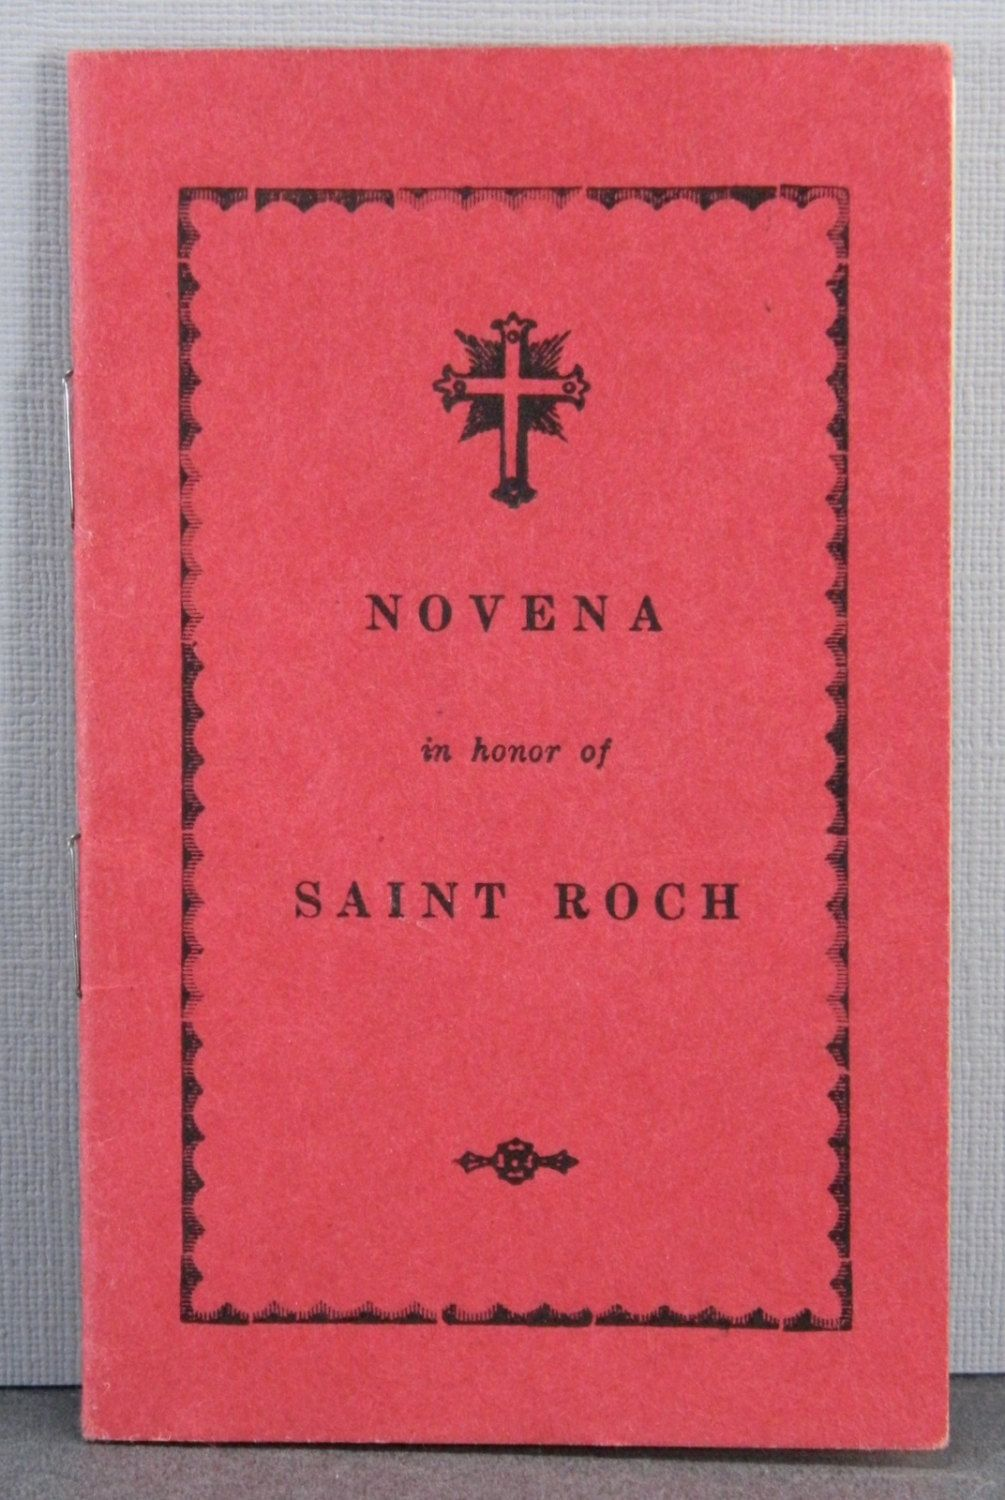 Novena Prayers in Honor of Saint Roch Imprimatur 1894 Vintage Catholic Booklet 17729 by QueeniesCollectibles on Etsy